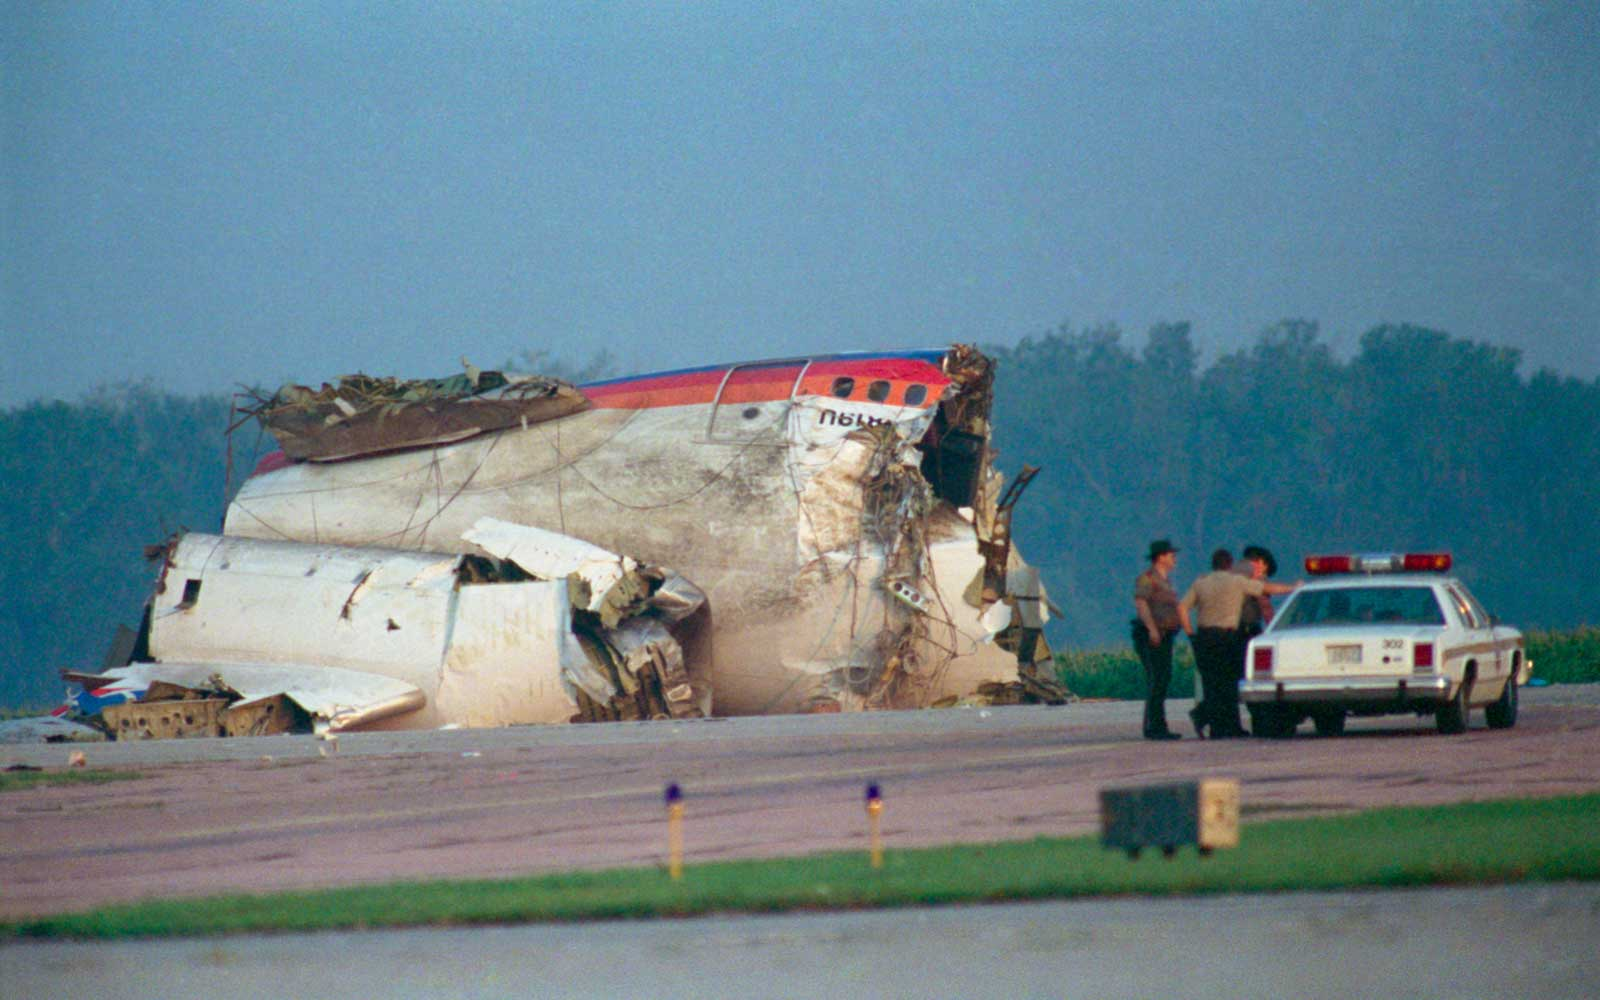 Debris from the Crashed United Airlines Flight 232